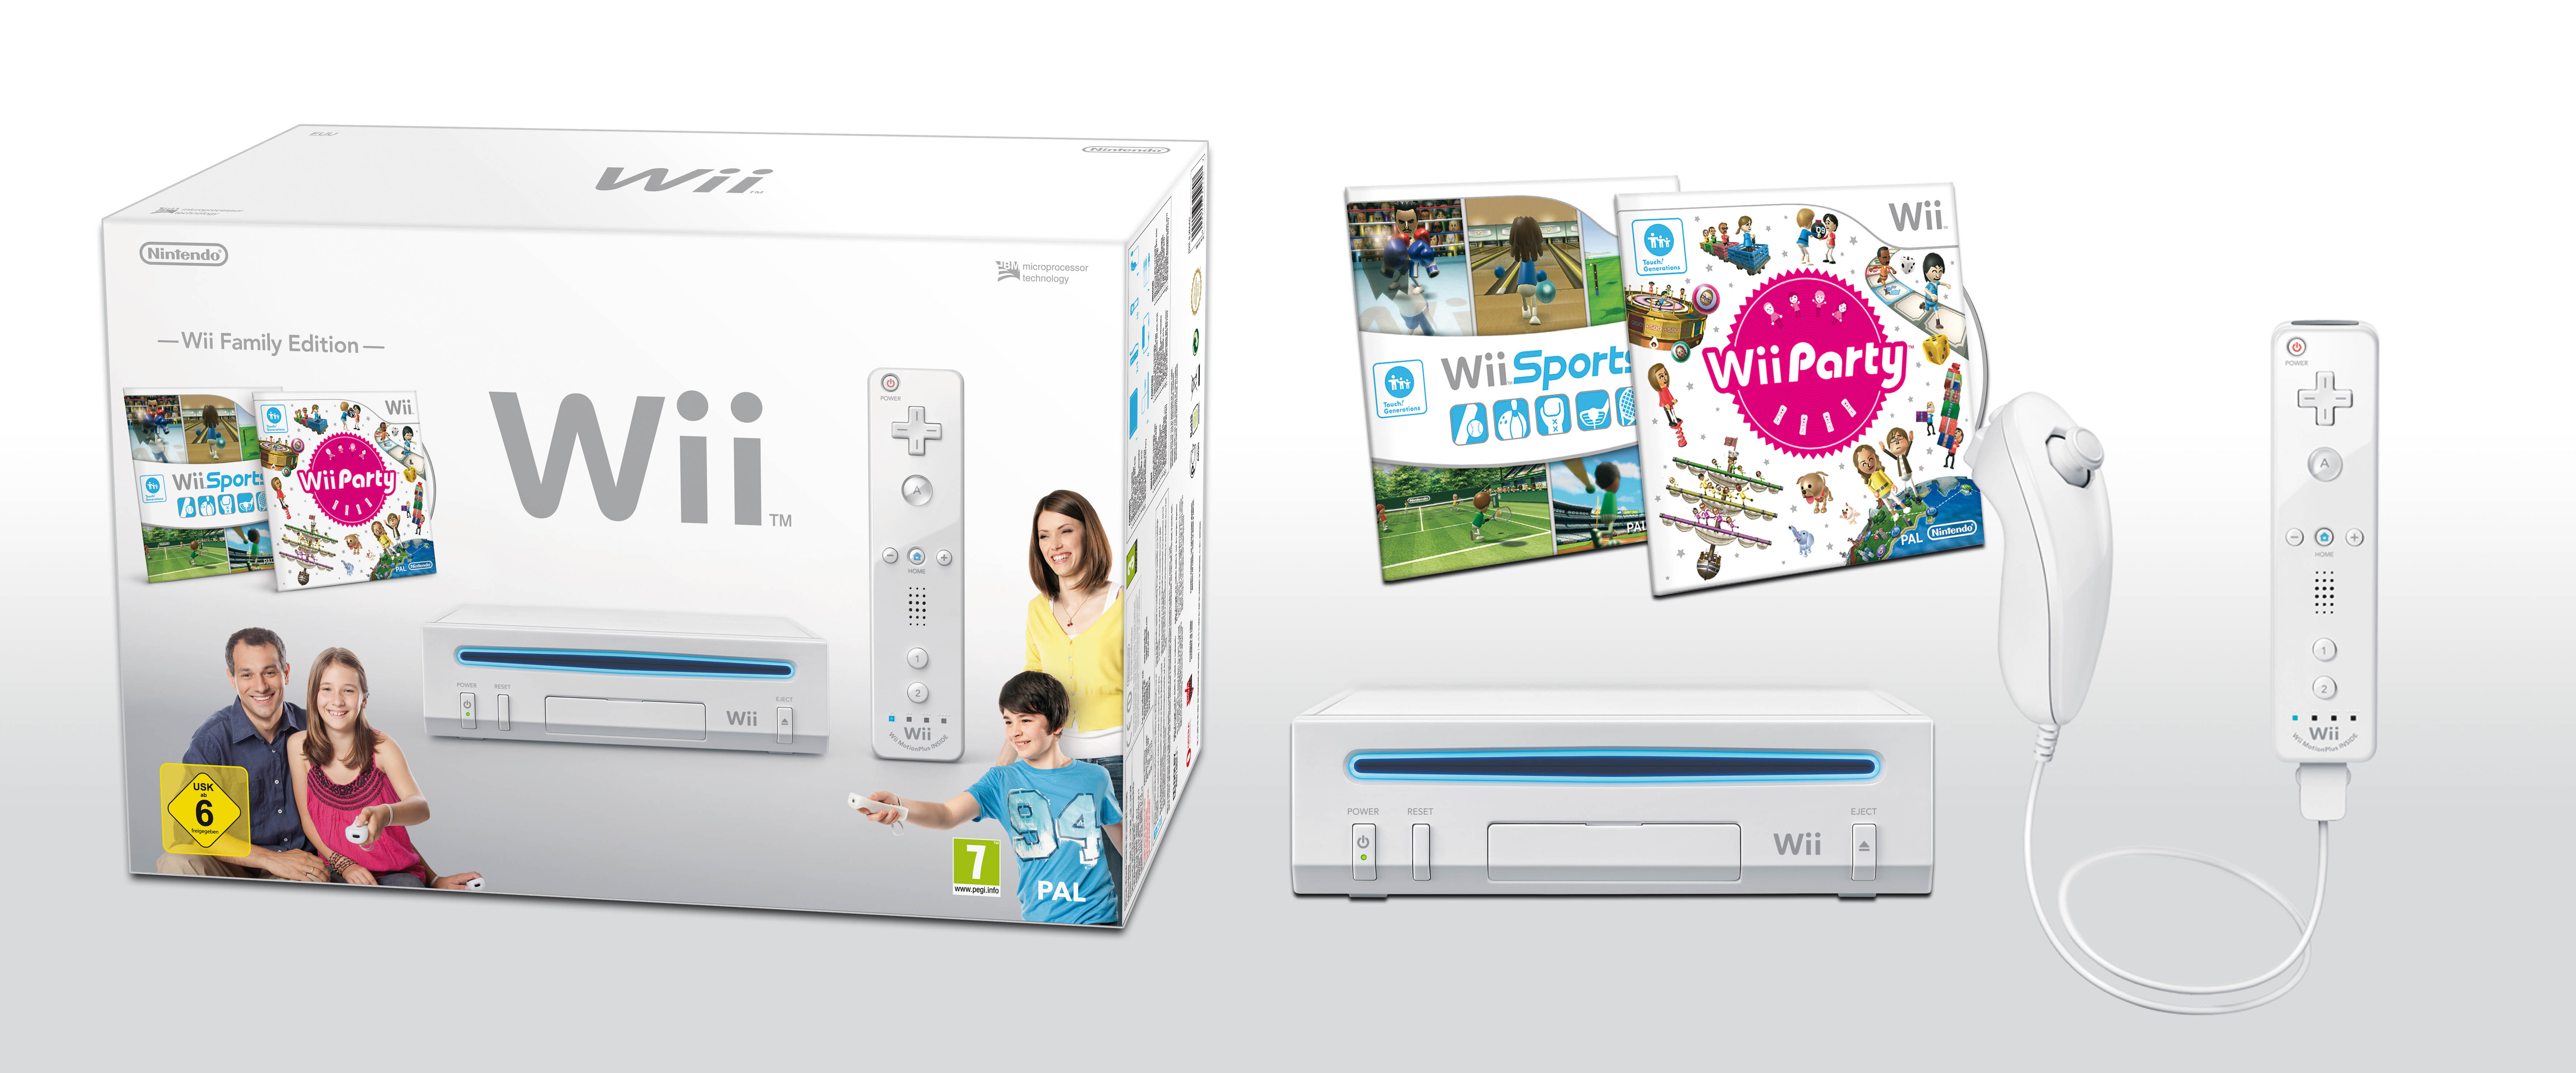 brand positioning nintendo wii The nintendo wii has been famous for this category, with wii sports taking the cake for moms and dads out there who want to play with their children overall, the influence of this multinational corporation is very strong, that even non-gamers would be familiar with the characters created by this brand.